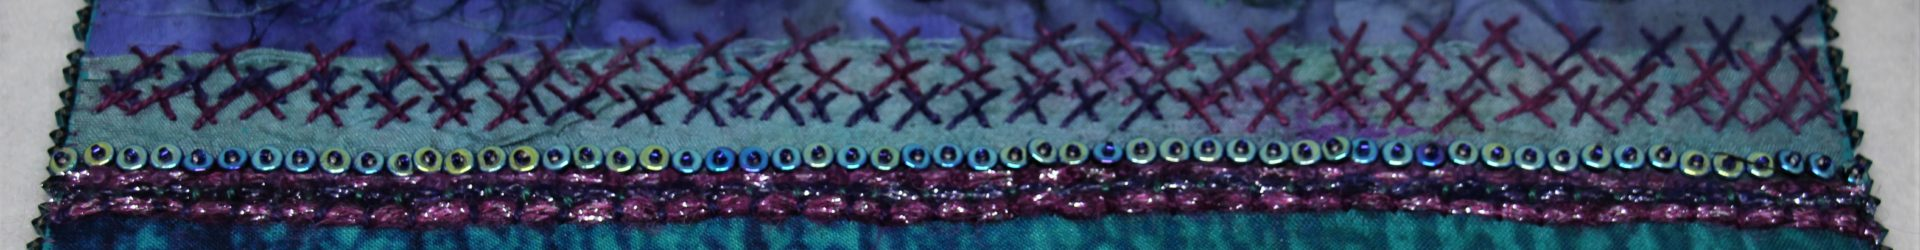 May 2019 Bead Mat Update: Freeform, stitch, and stories!